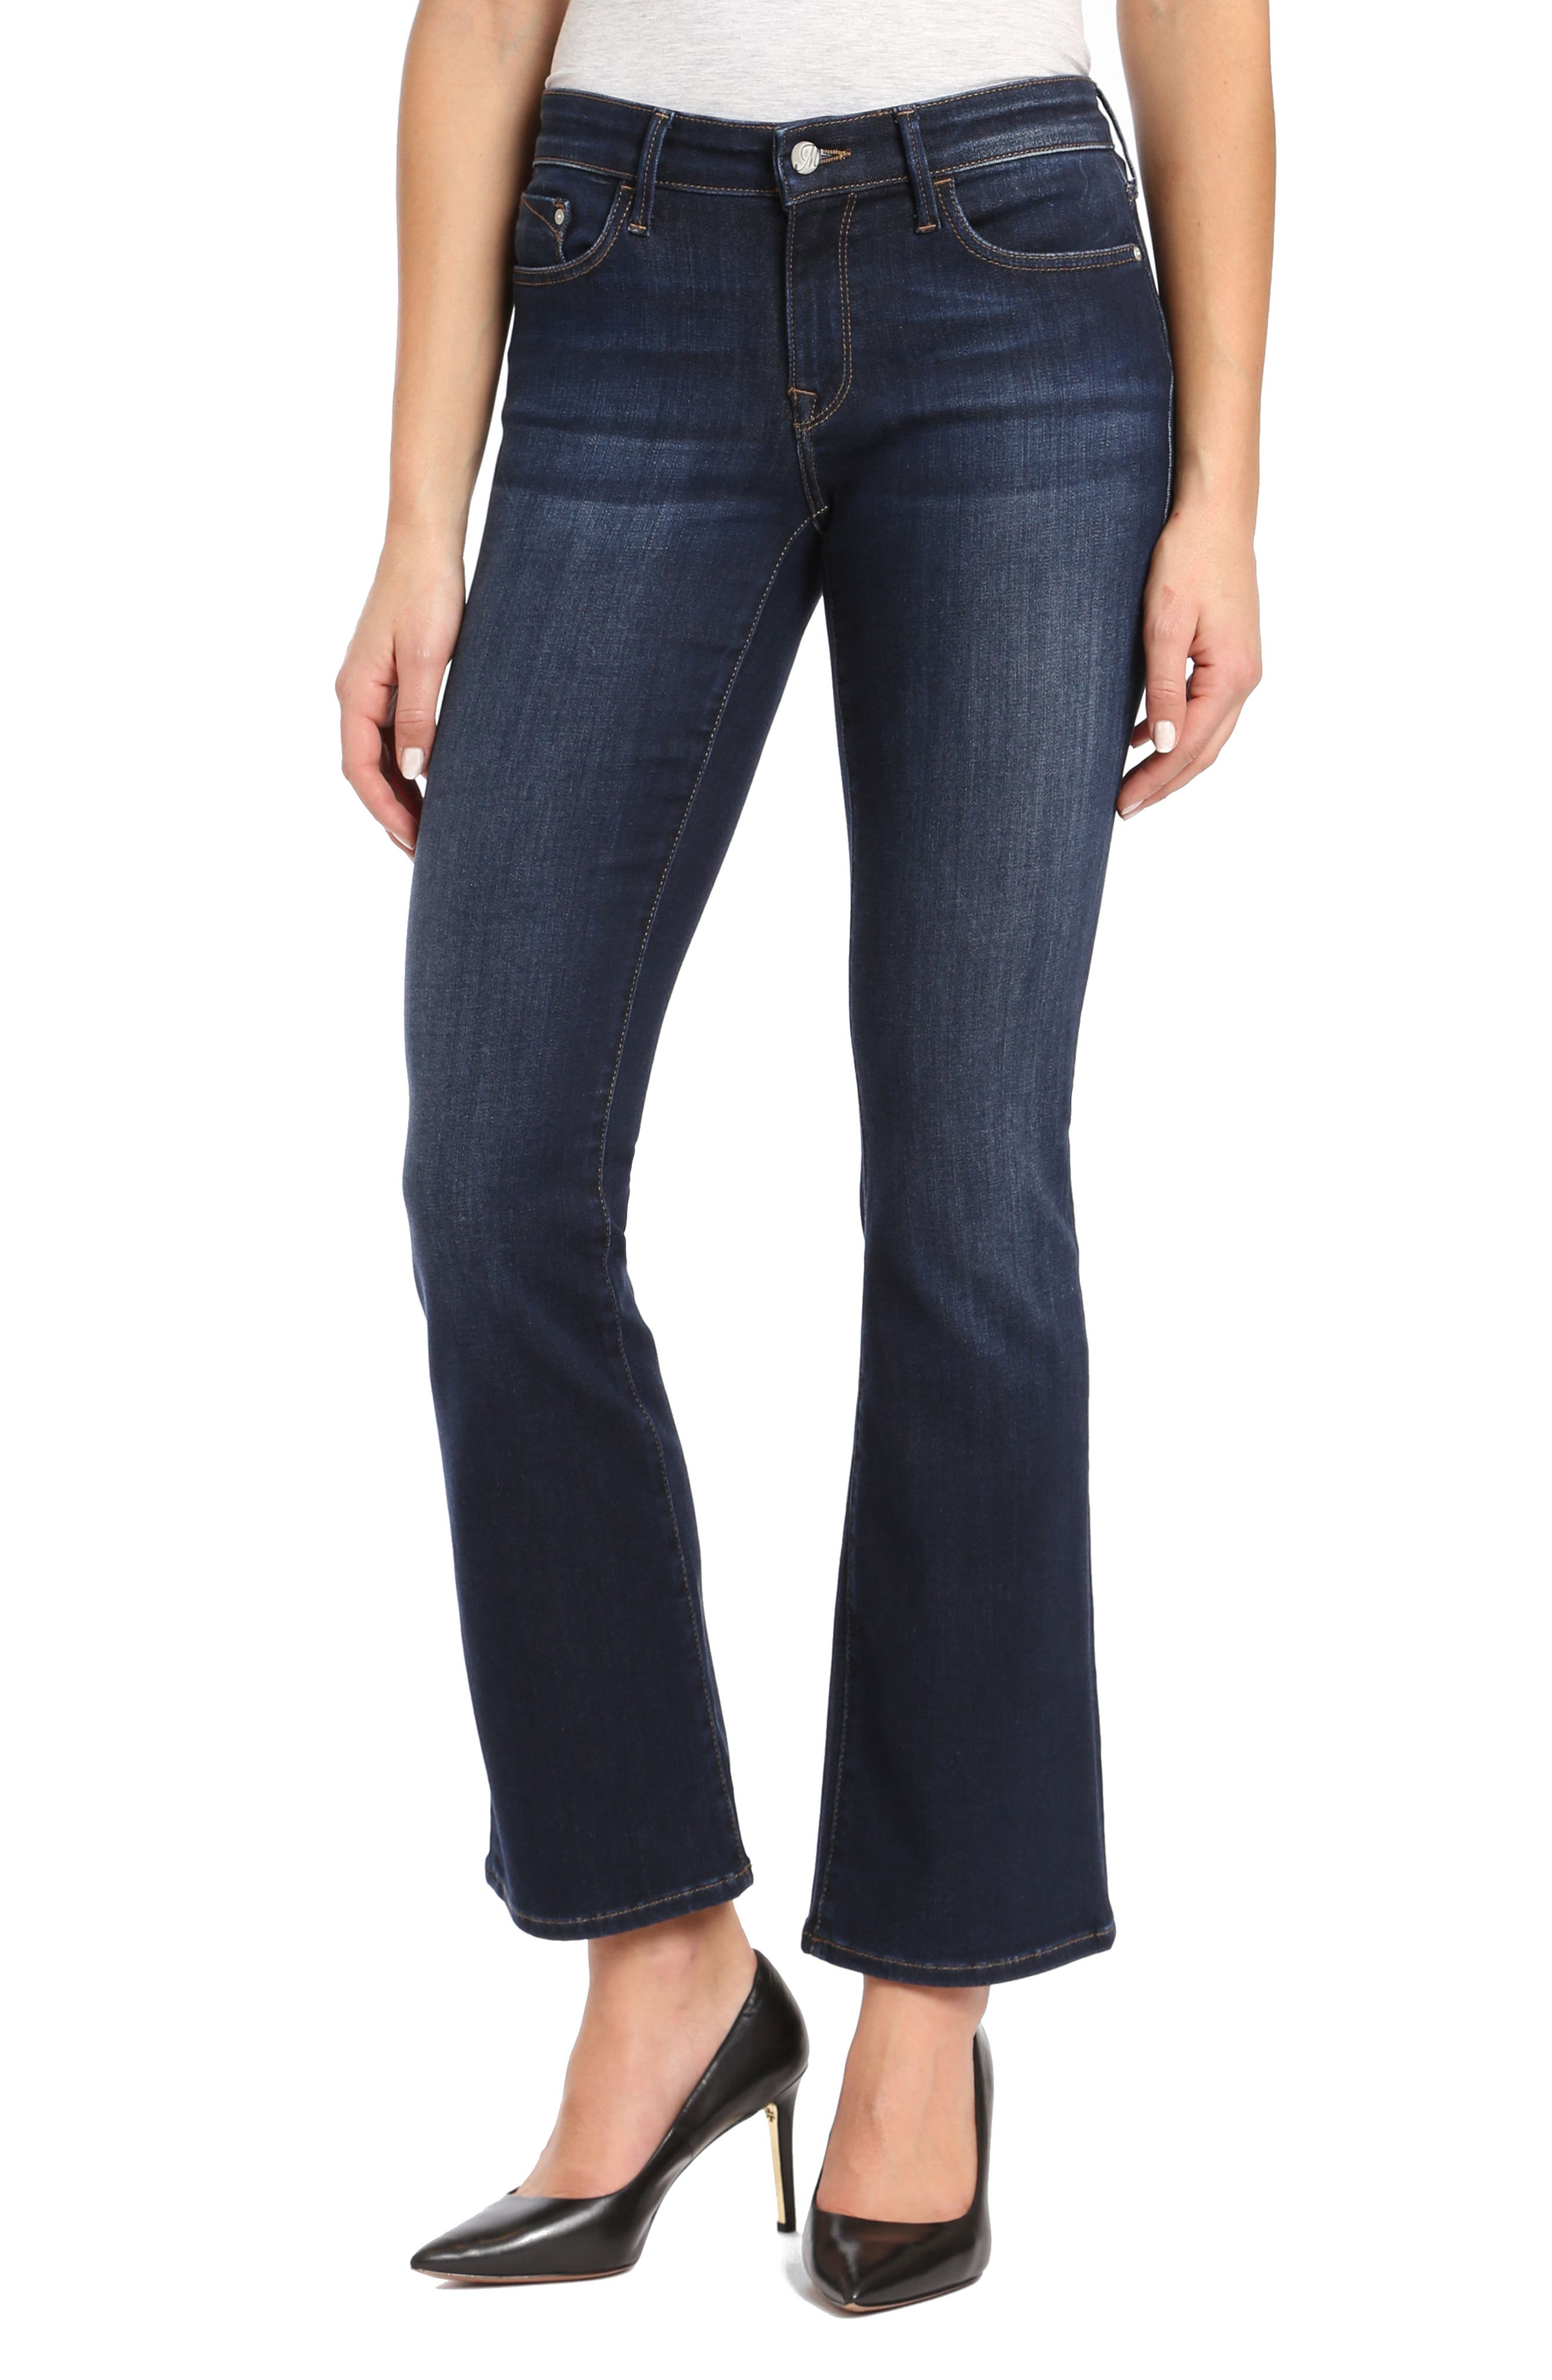 Molly Classic Bootcuts Jeans,                         Main,                         color, Deep Super Soft